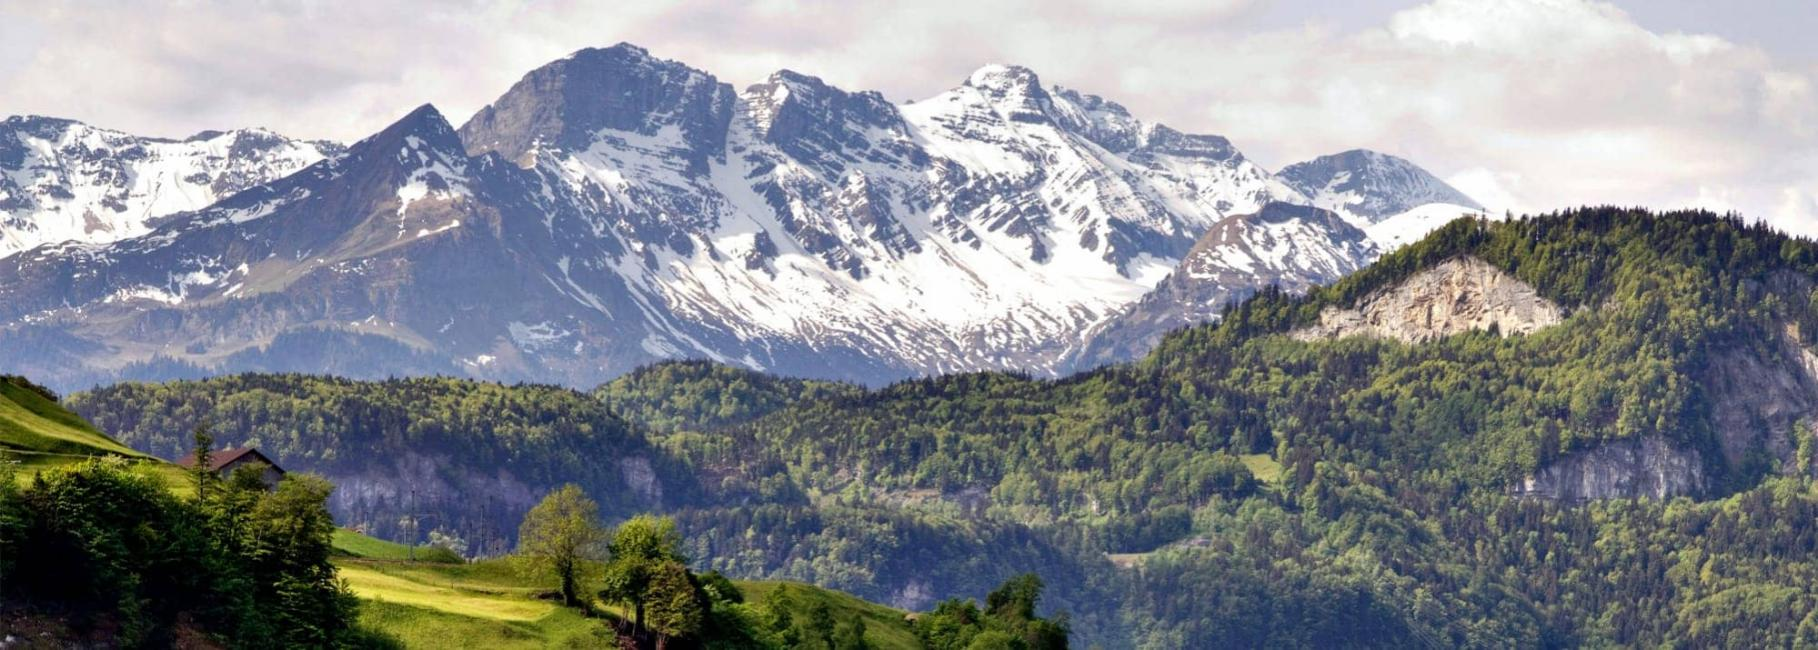 swiss alps geography trip header nst